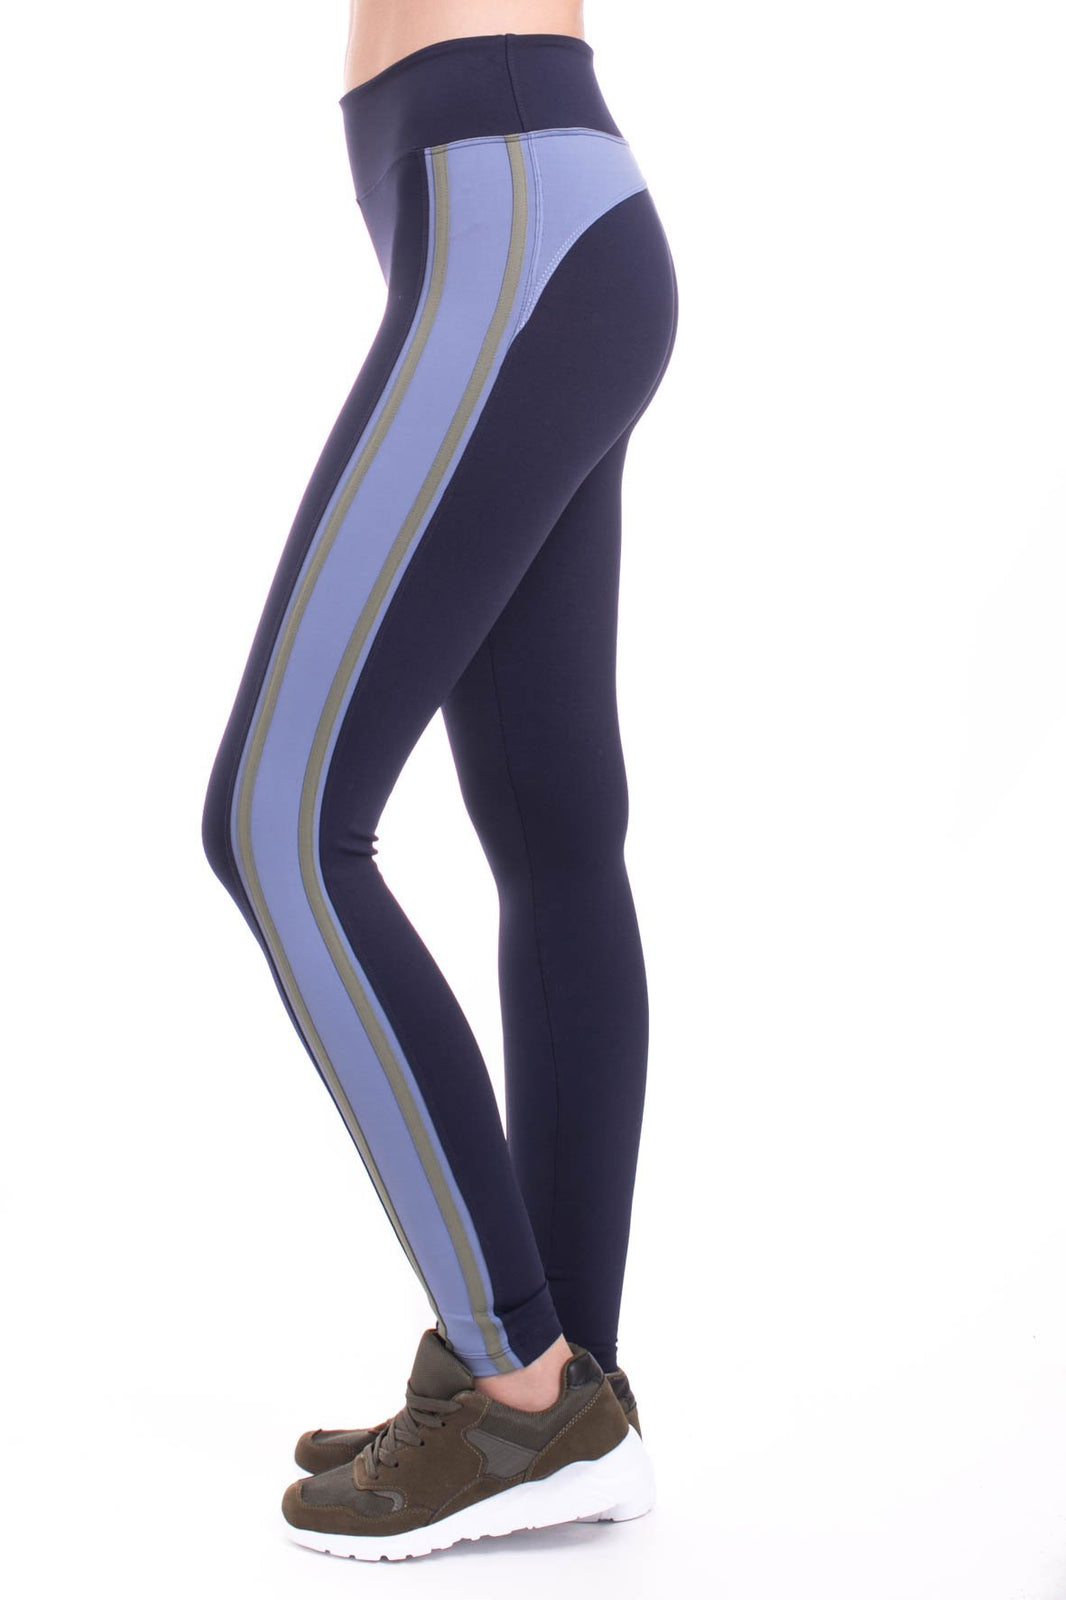 Miss Behave Legging - Moss Stripe